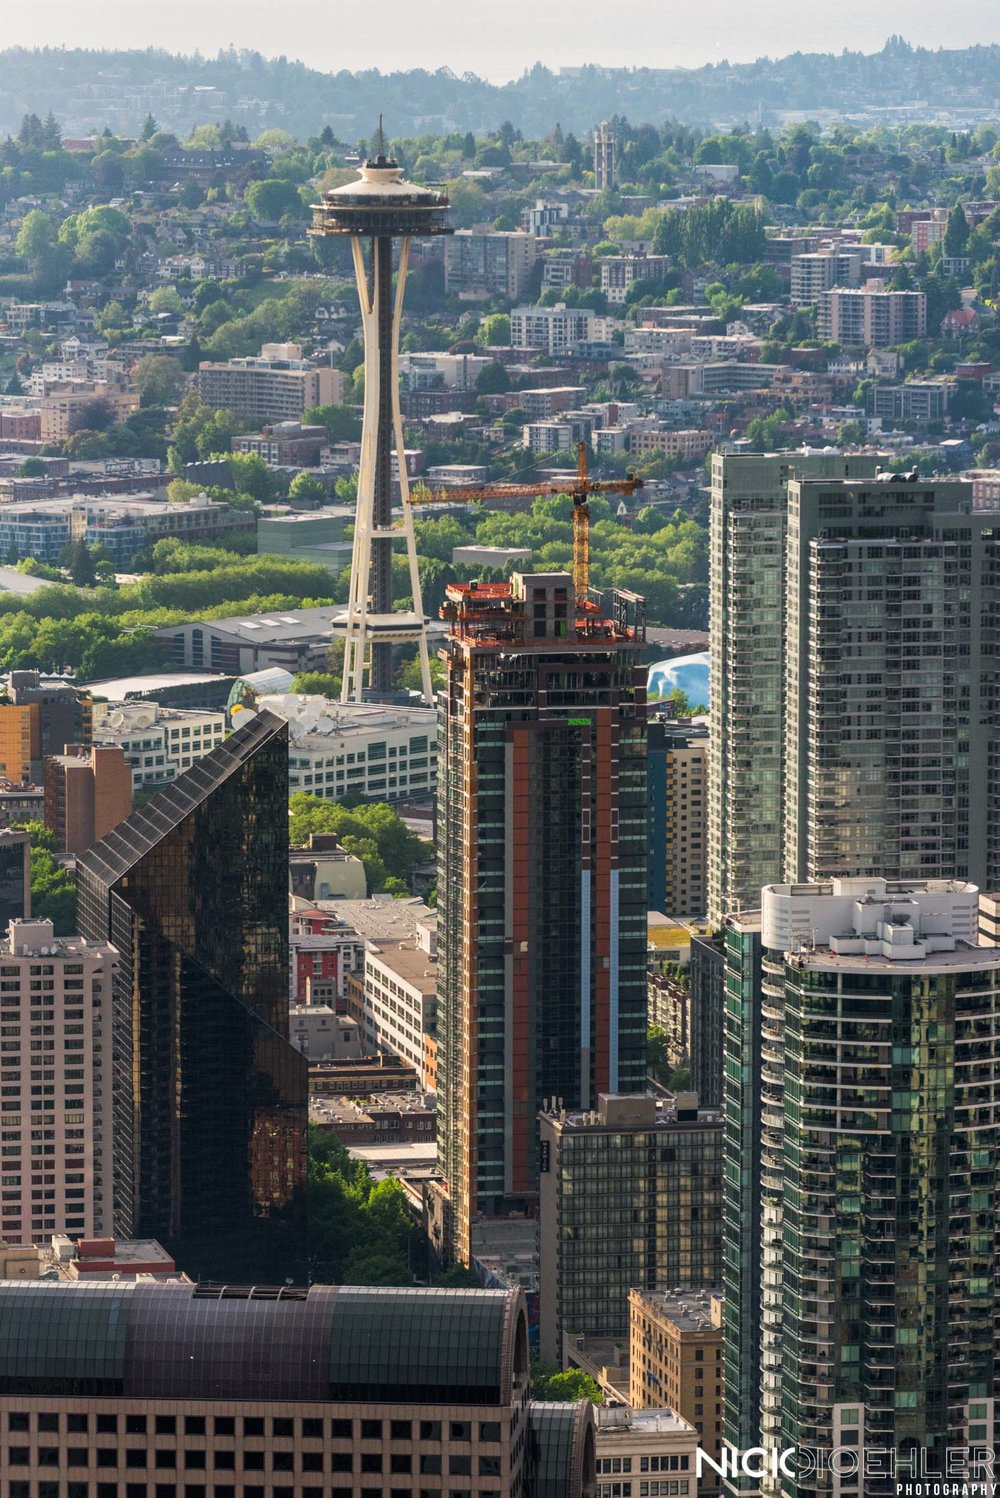 Seattle, Washington: Space needle behind the conglomeration of buildings.